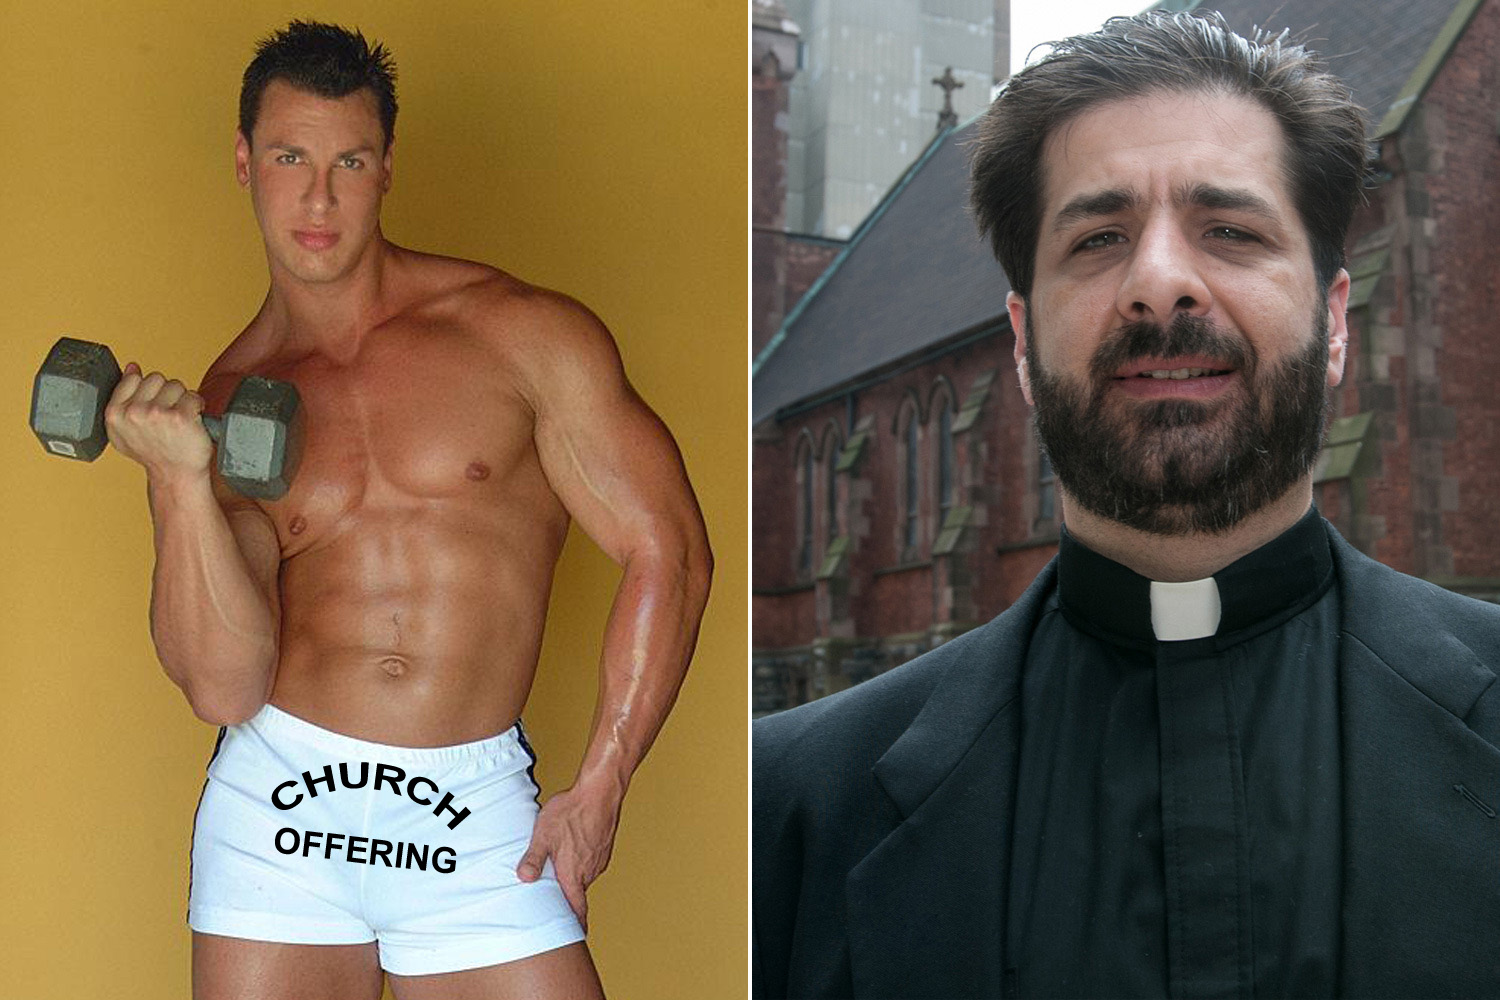 Homosexual priests erotic picture